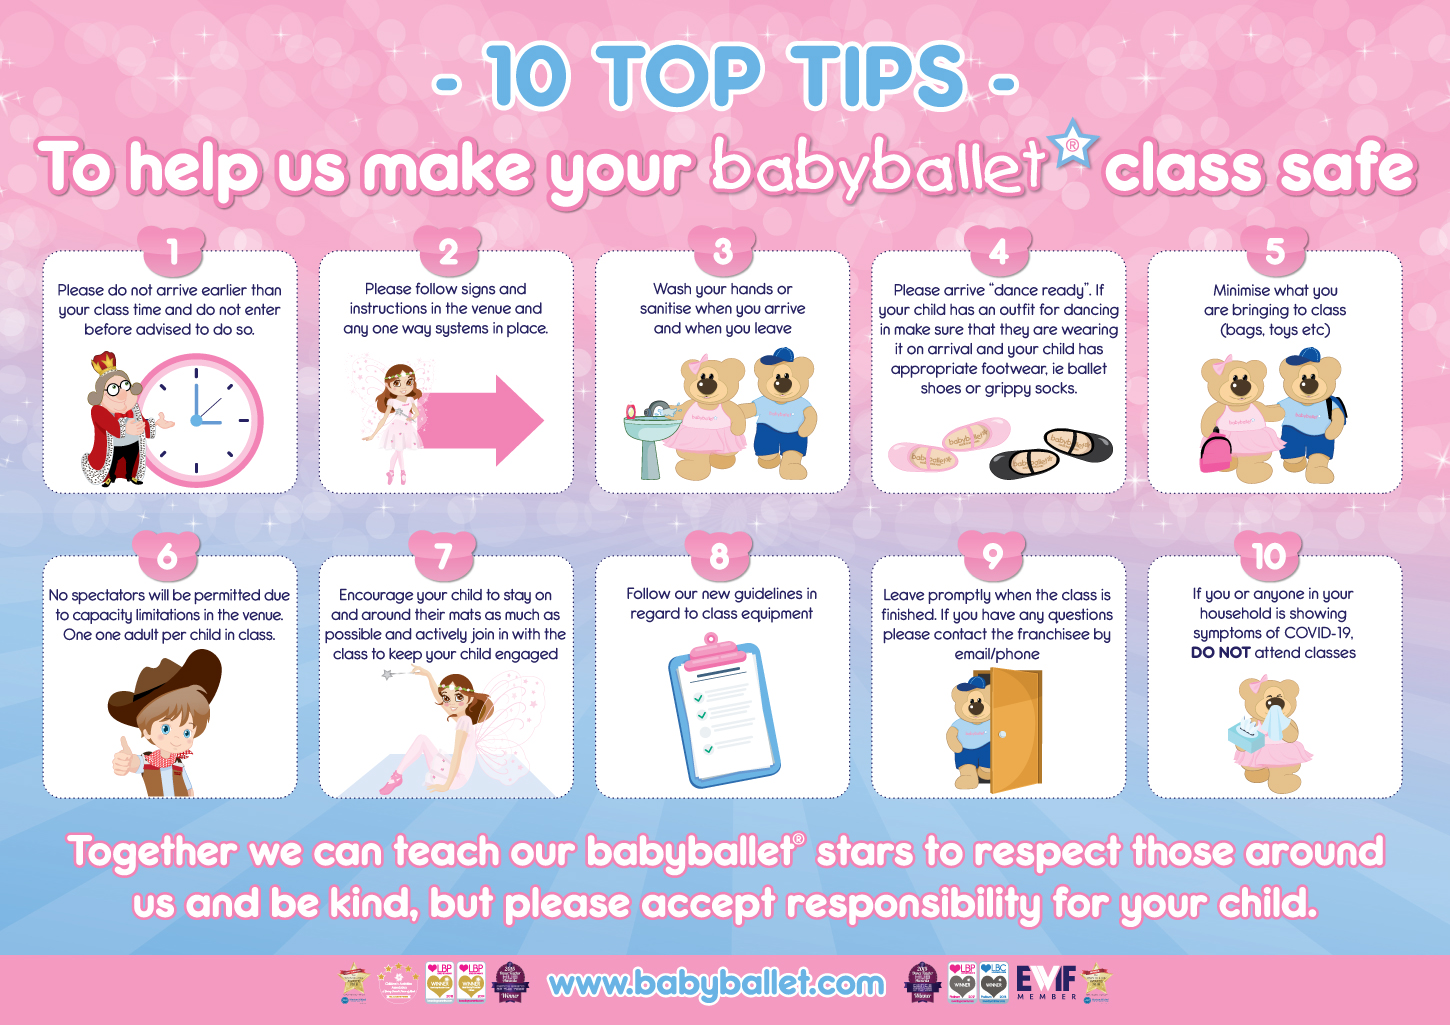 babyballet top 10 tips for you to help keep our classes COVID safe